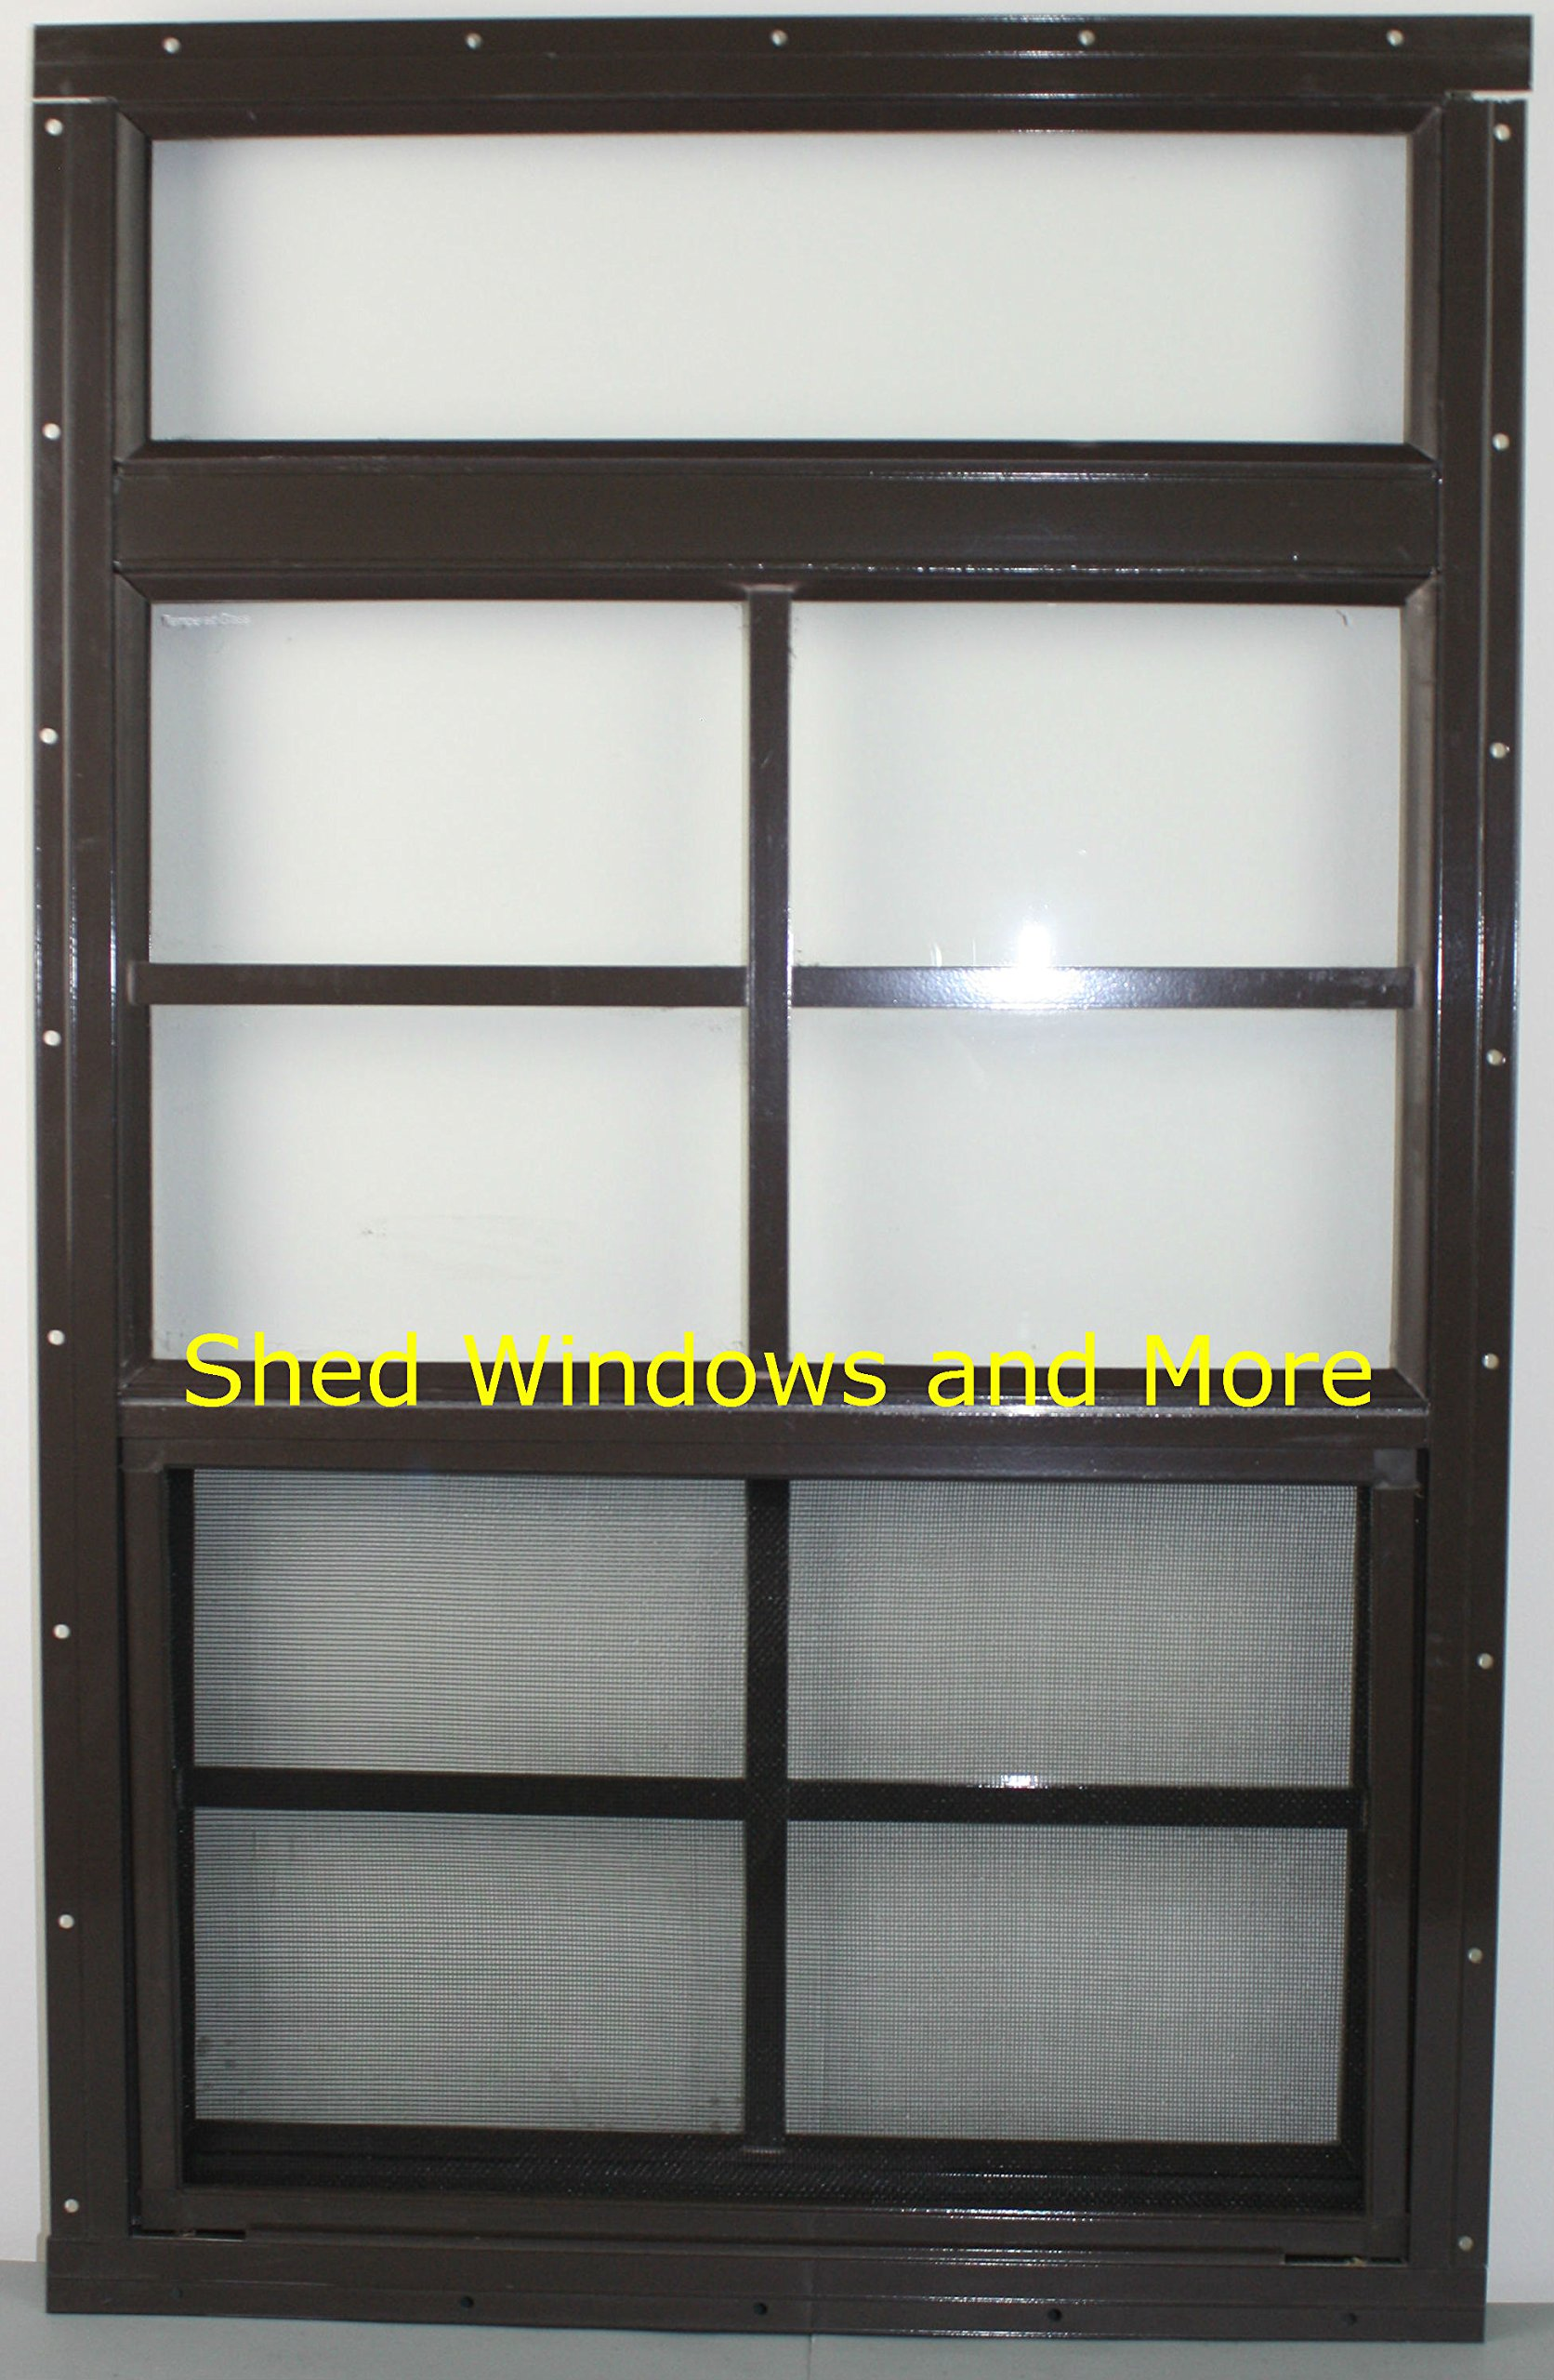 Shed Windows 24'' X 34'' Moreview Brown Flush Mount Safety/Tempered Glass, Playhouse Windows, Chicken Coop Windows